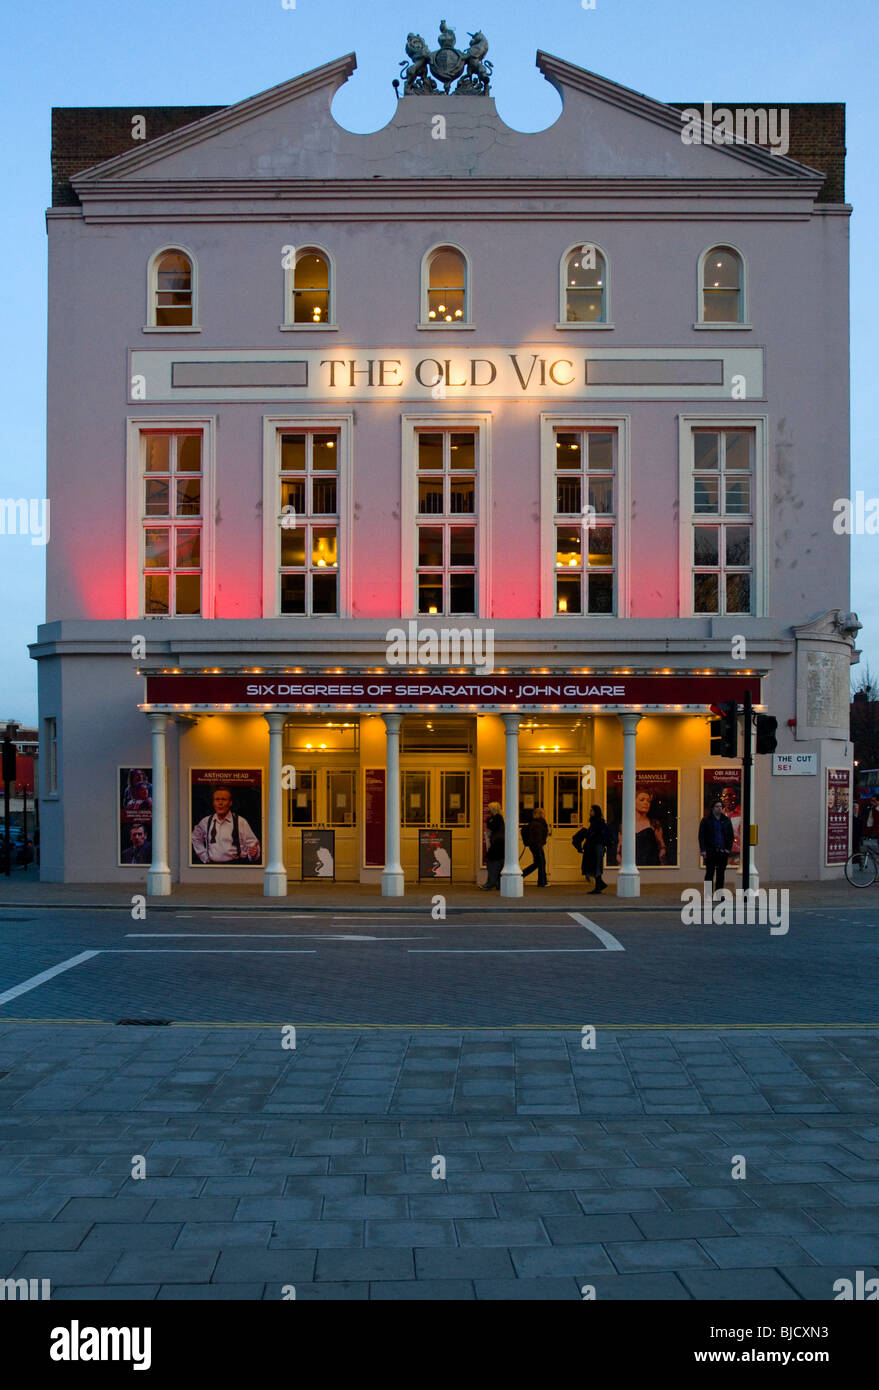 The Old Vic Theatre situated on The Cut near Waterloo, London - Stock Image